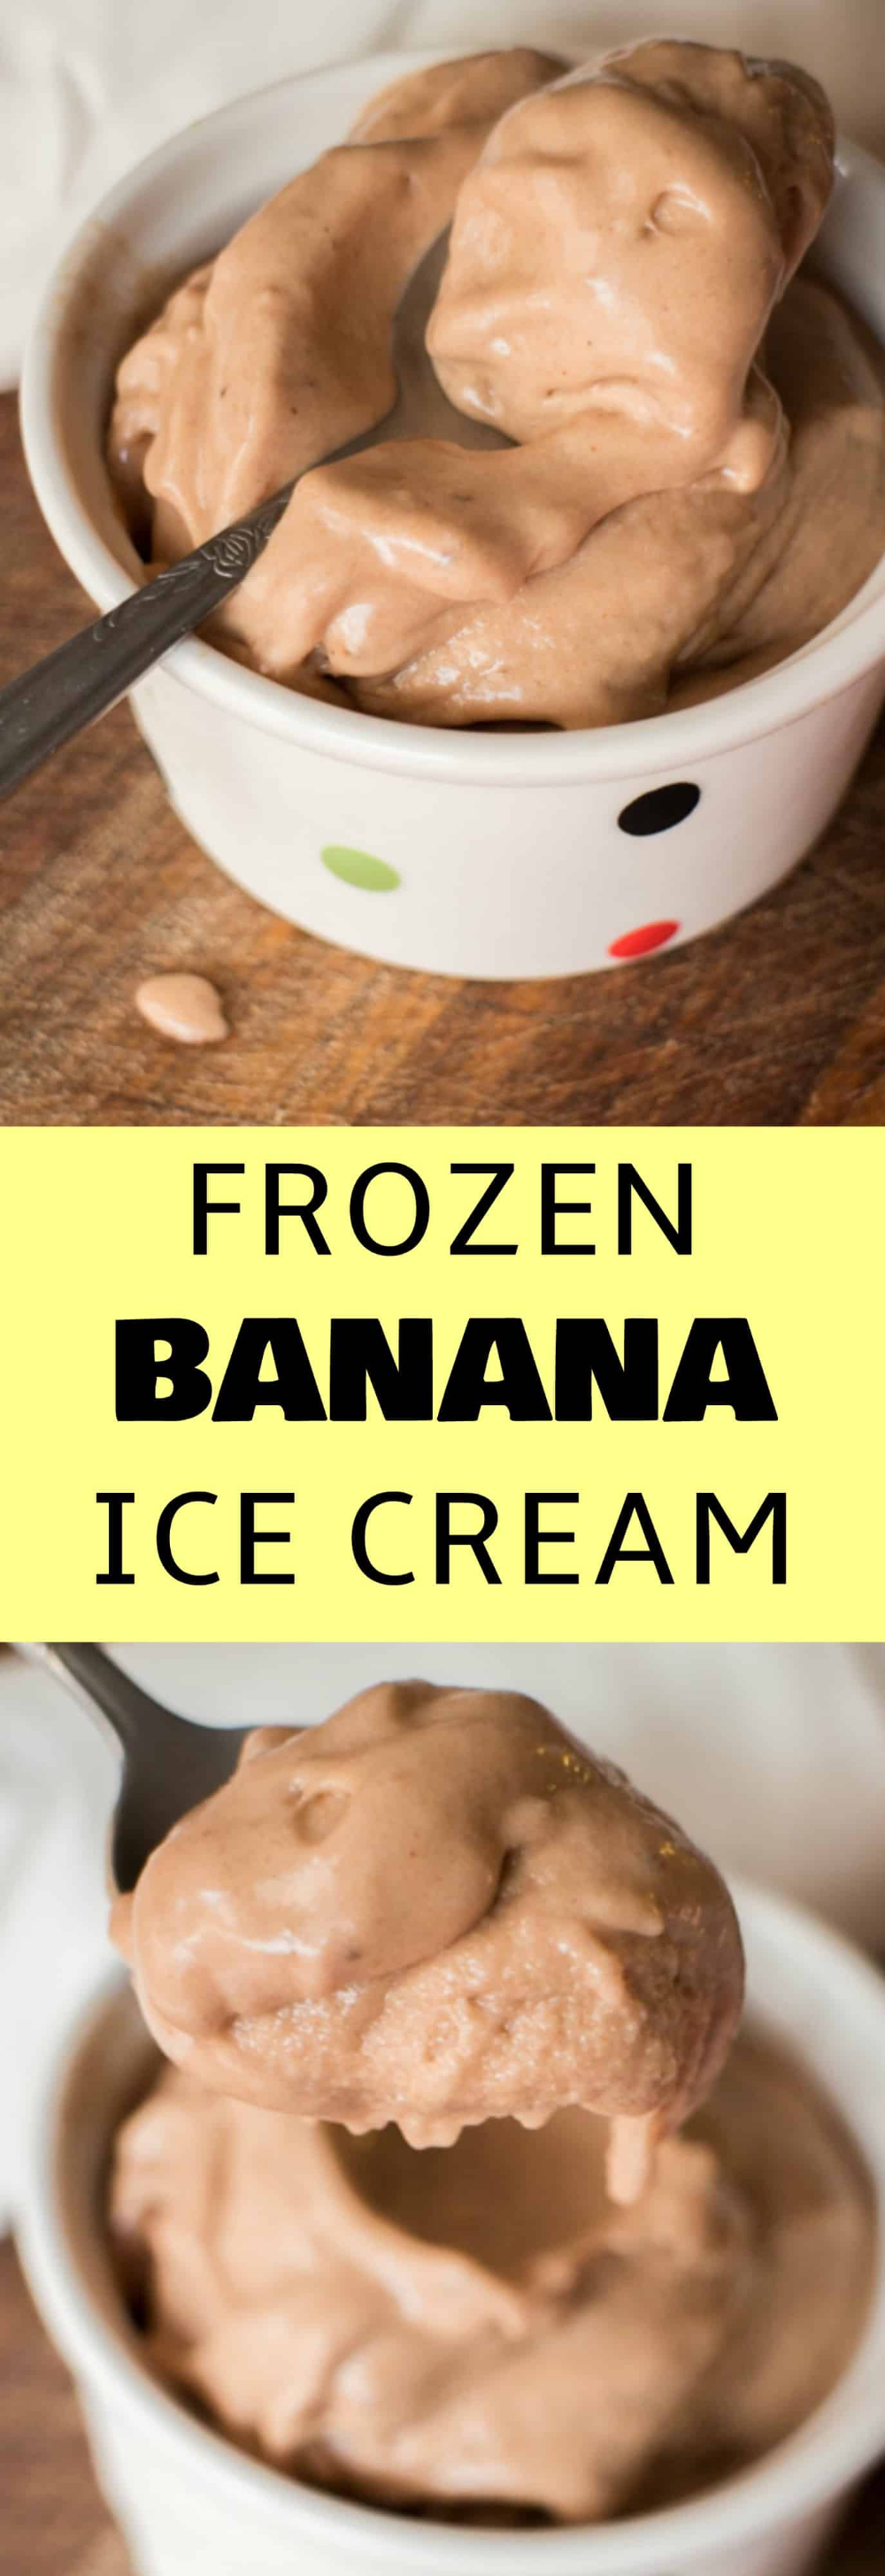 Frozen Banana Ice Cream Recipe - Healthy and easy to make!